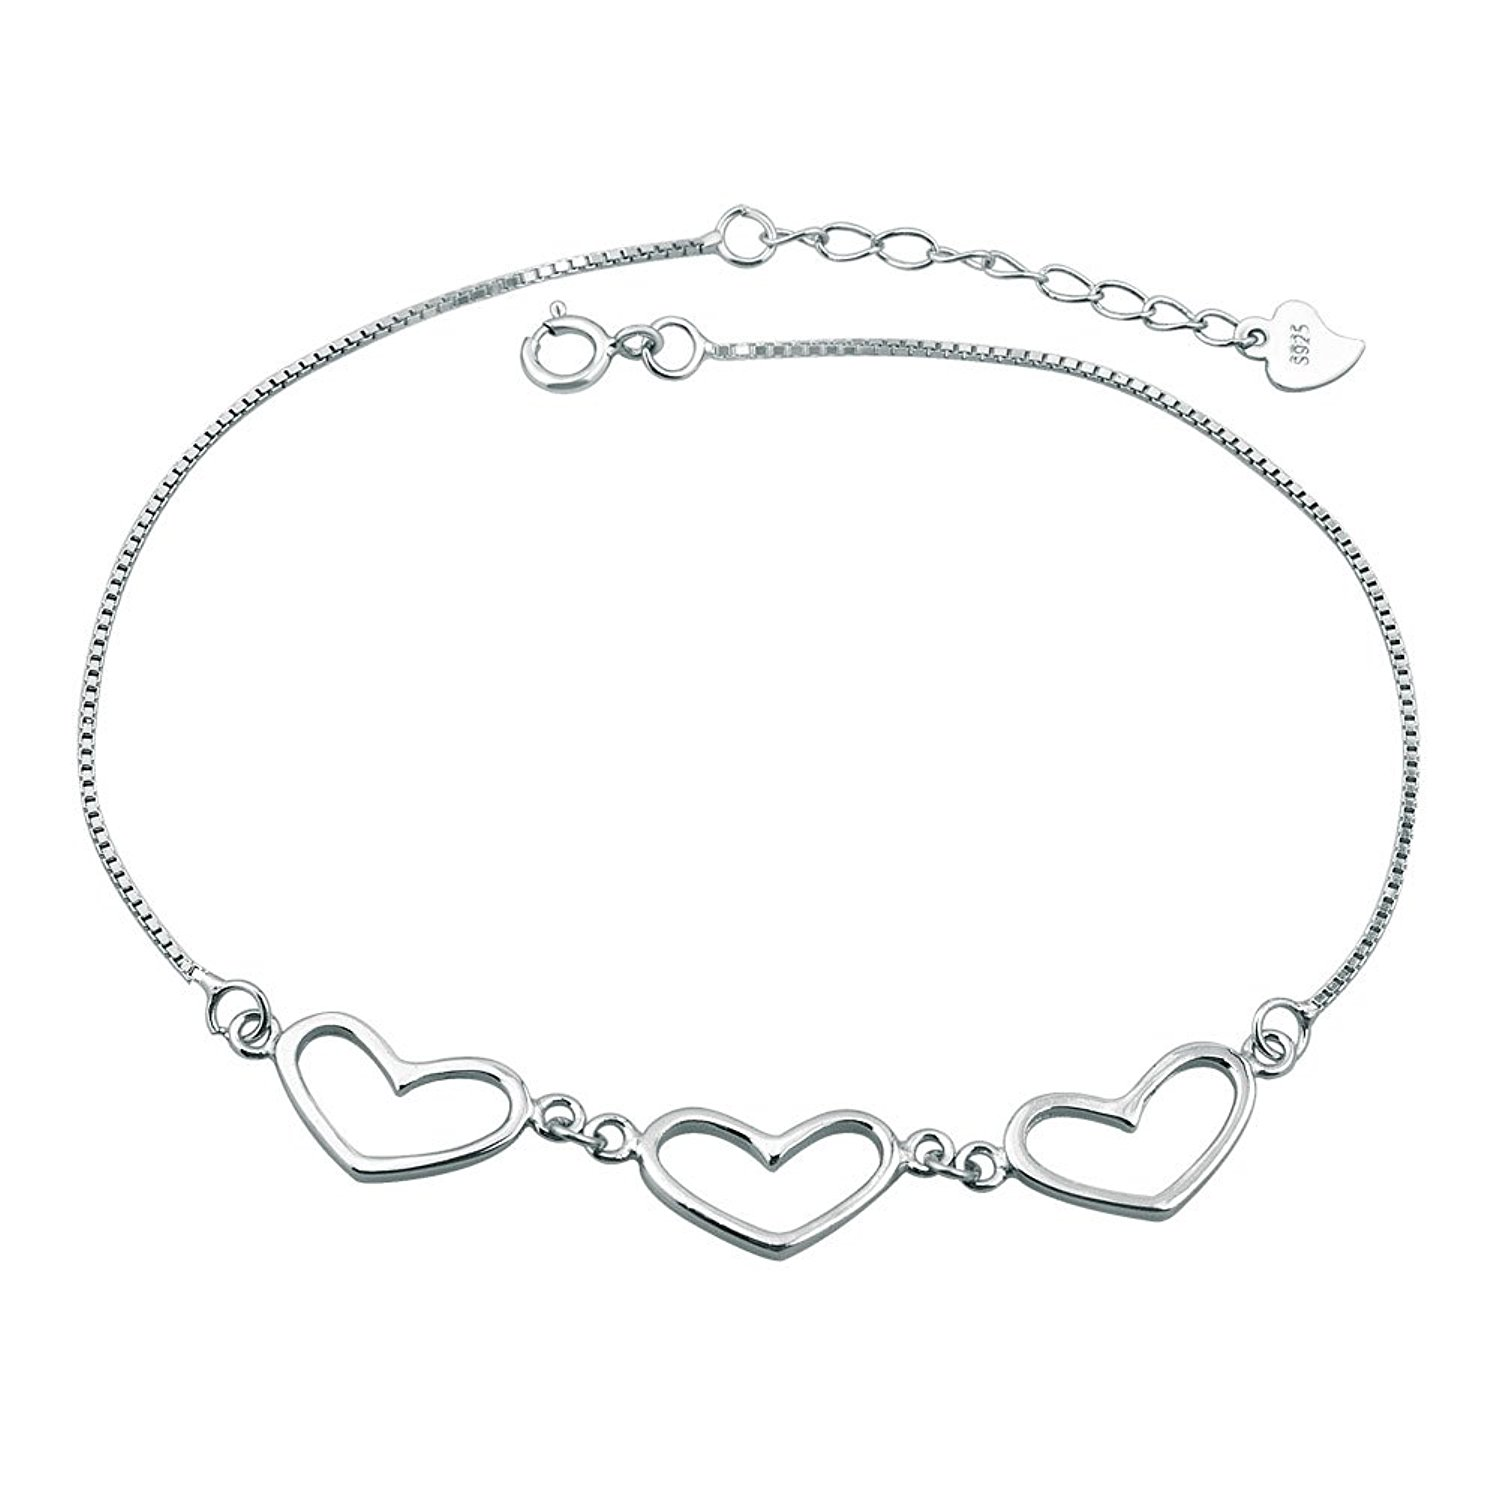 Mel Crouch 925 Sterling Silver Bling Sexy Star/Butterfly/Heart Beach Anklets Ankle Holiday Bracelets